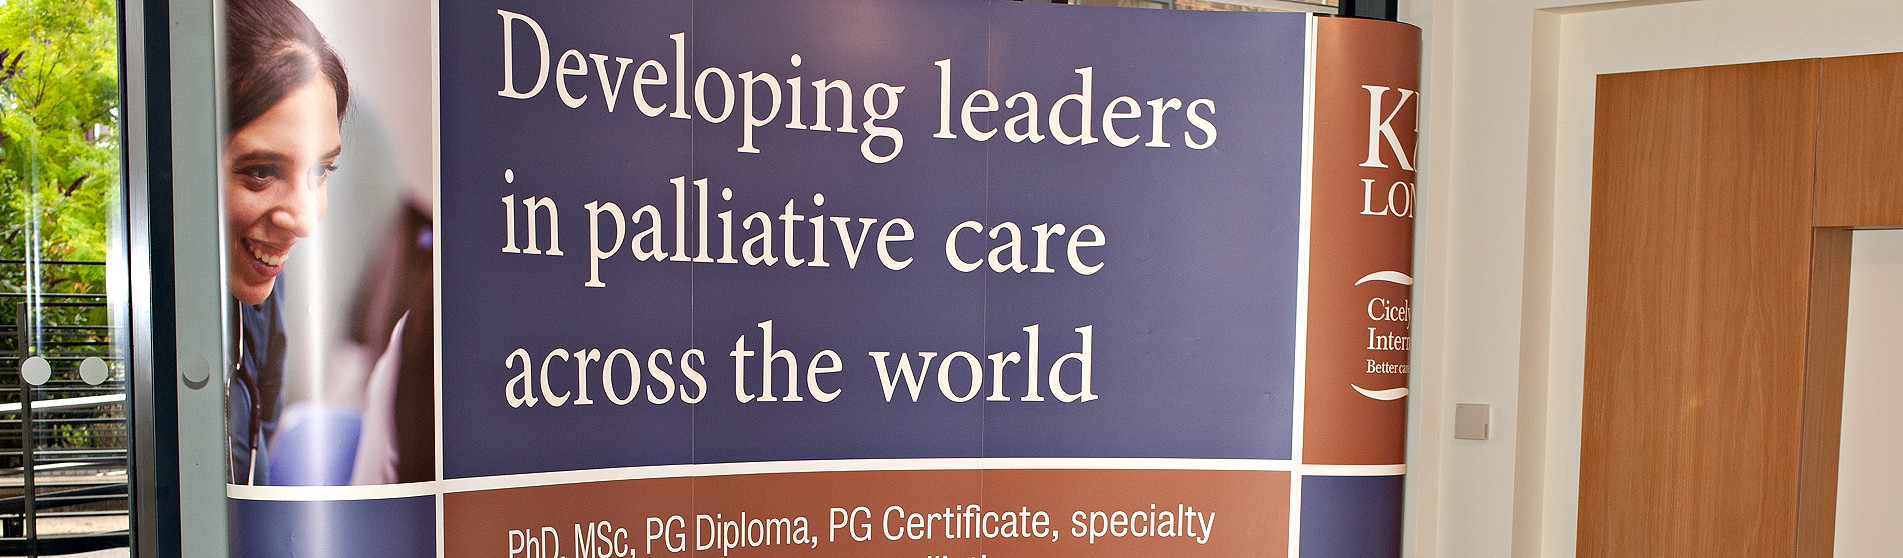 Developing leaders in palliative care across the world